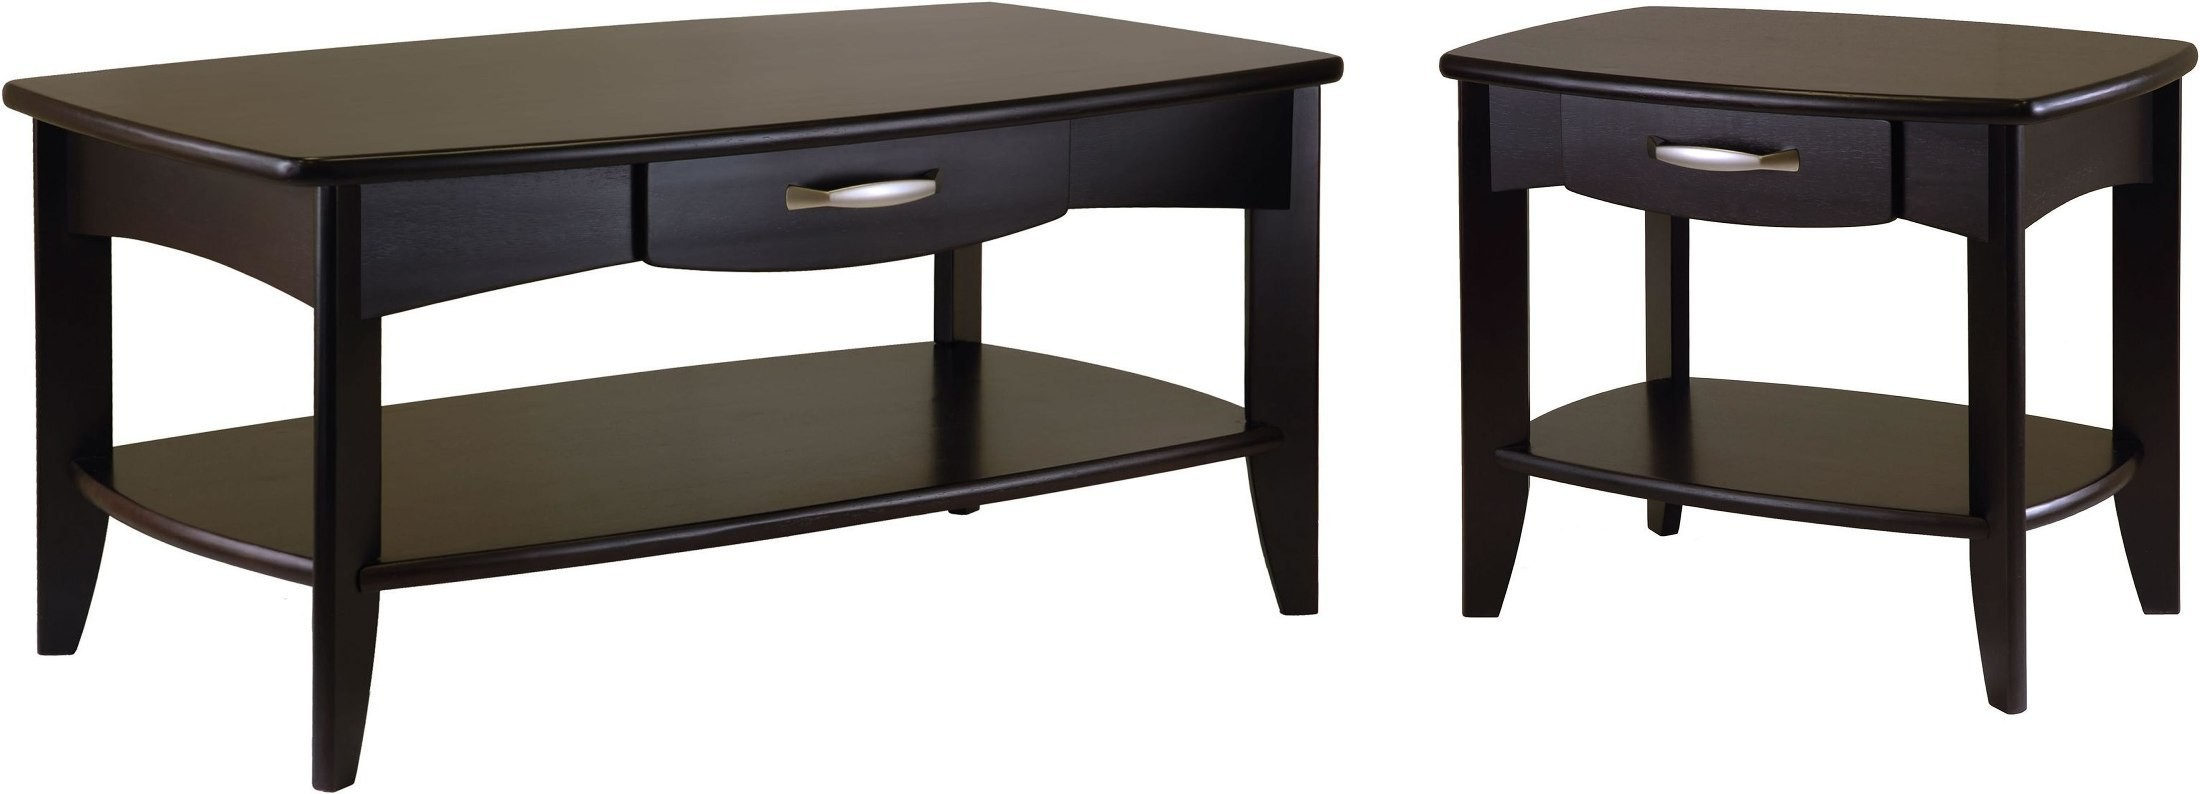 Danica Dark Espresso Occasional Table Set From Winsomewood Coleman Furniture